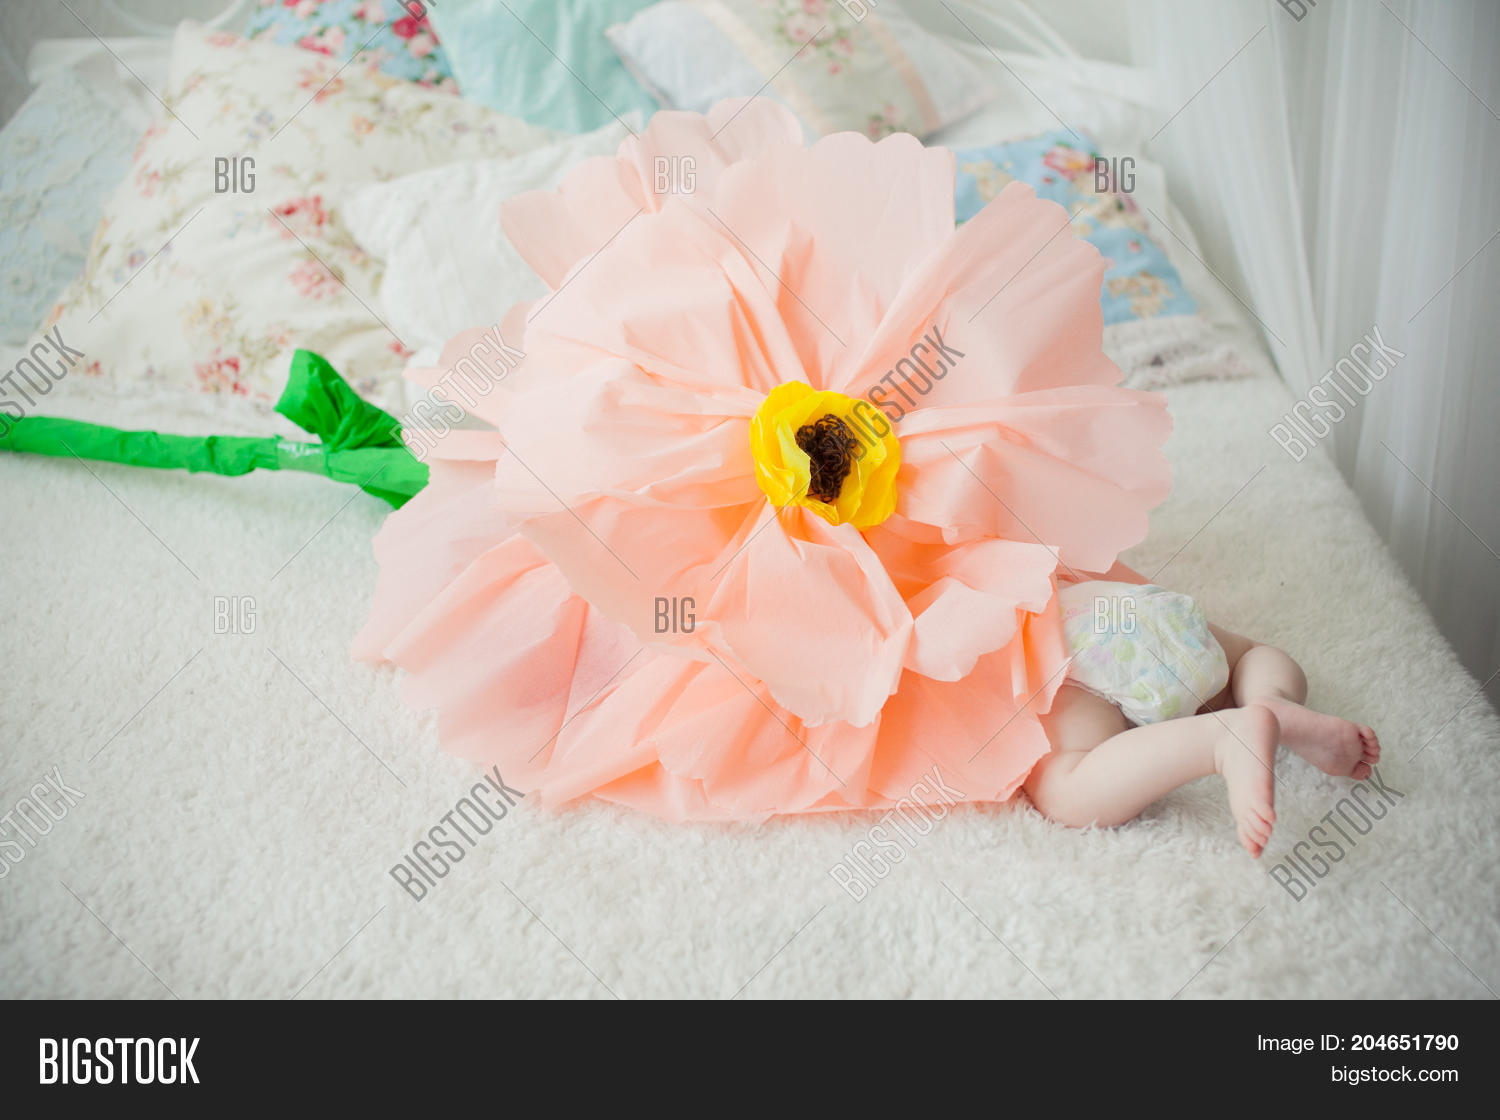 Baby On Bed Playing Image Photo Free Trial Bigstock